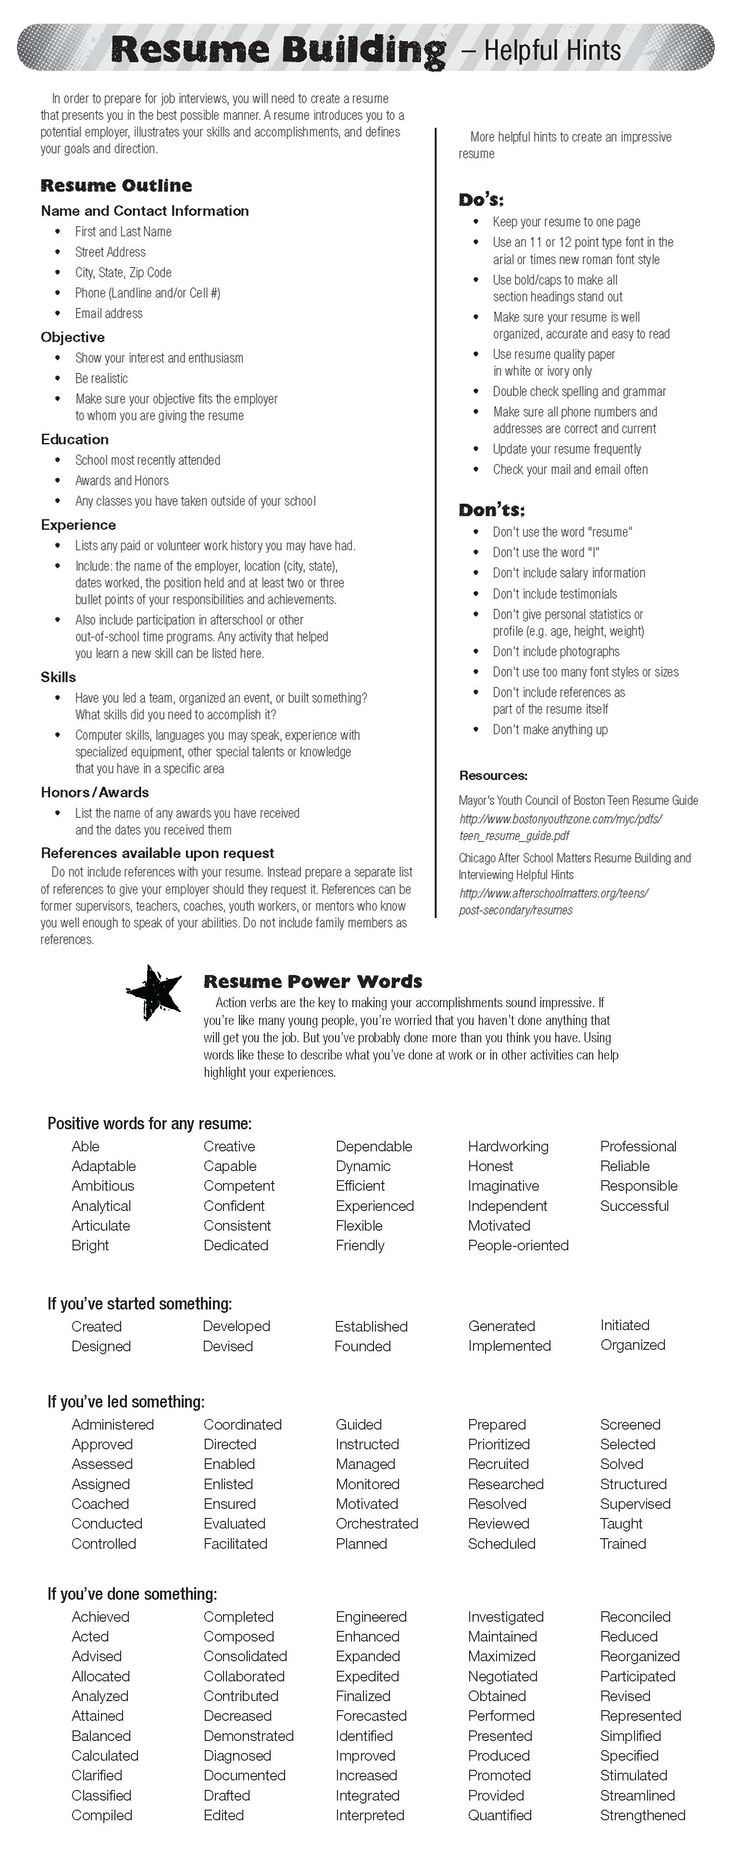 Opposenewapstandardsus  Picturesque  Ideas About Resume On Pinterest  Cv Format Resume  With Glamorous Check Out Todays Resume Building Tips Resume Resumepowerwords With Extraordinary List Of Technical Skills For Resume Also Find My Resume Online In Addition Csuf Resume Builder And Video Editor Resume Sample As Well As Kick Ass Resume Additionally Massage Therapist Resume Objective From Pinterestcom With Opposenewapstandardsus  Glamorous  Ideas About Resume On Pinterest  Cv Format Resume  With Extraordinary Check Out Todays Resume Building Tips Resume Resumepowerwords And Picturesque List Of Technical Skills For Resume Also Find My Resume Online In Addition Csuf Resume Builder From Pinterestcom